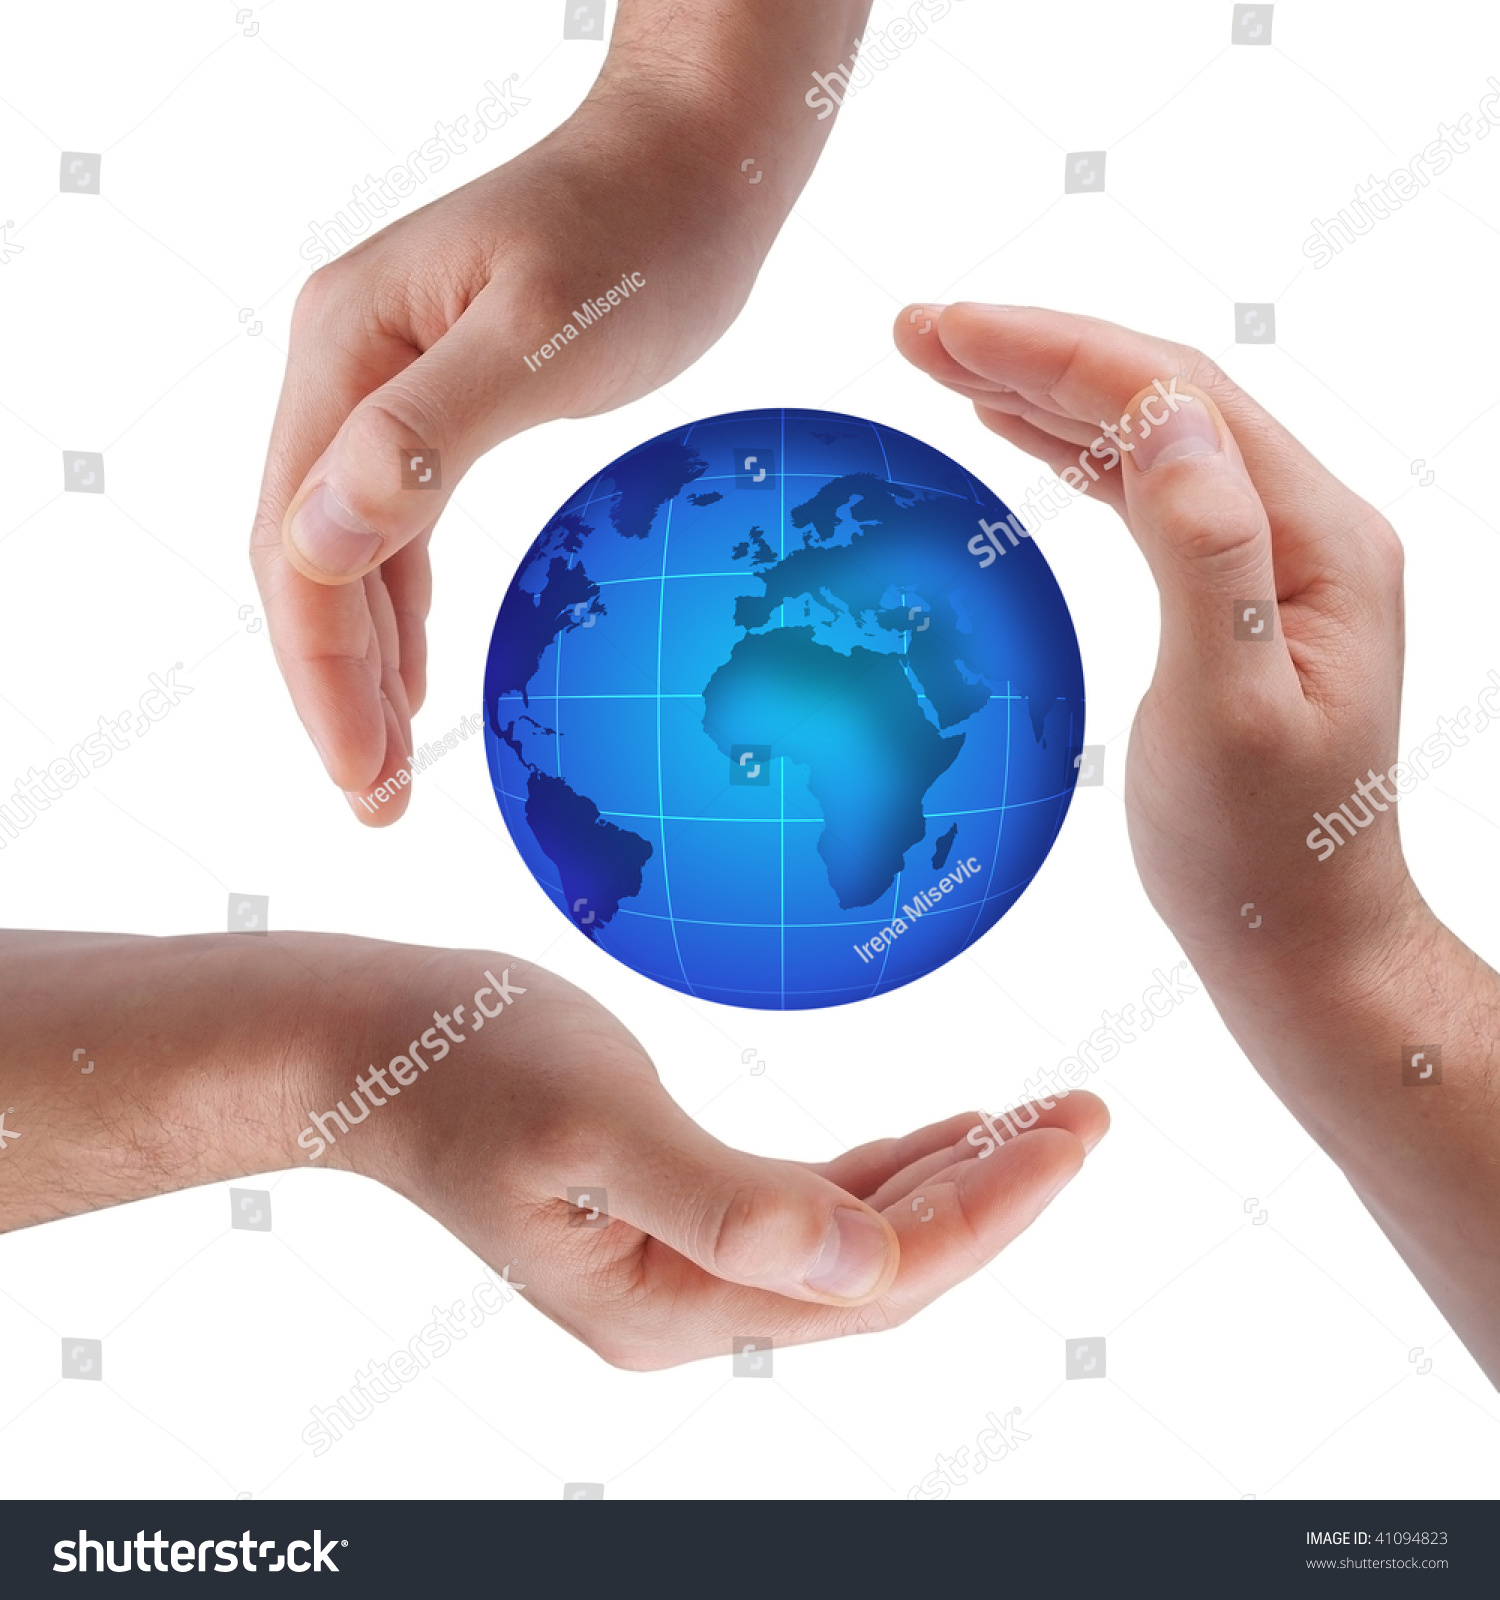 Conceptual Safety Symbol Made Hands Over Stock Photo Royalty Free